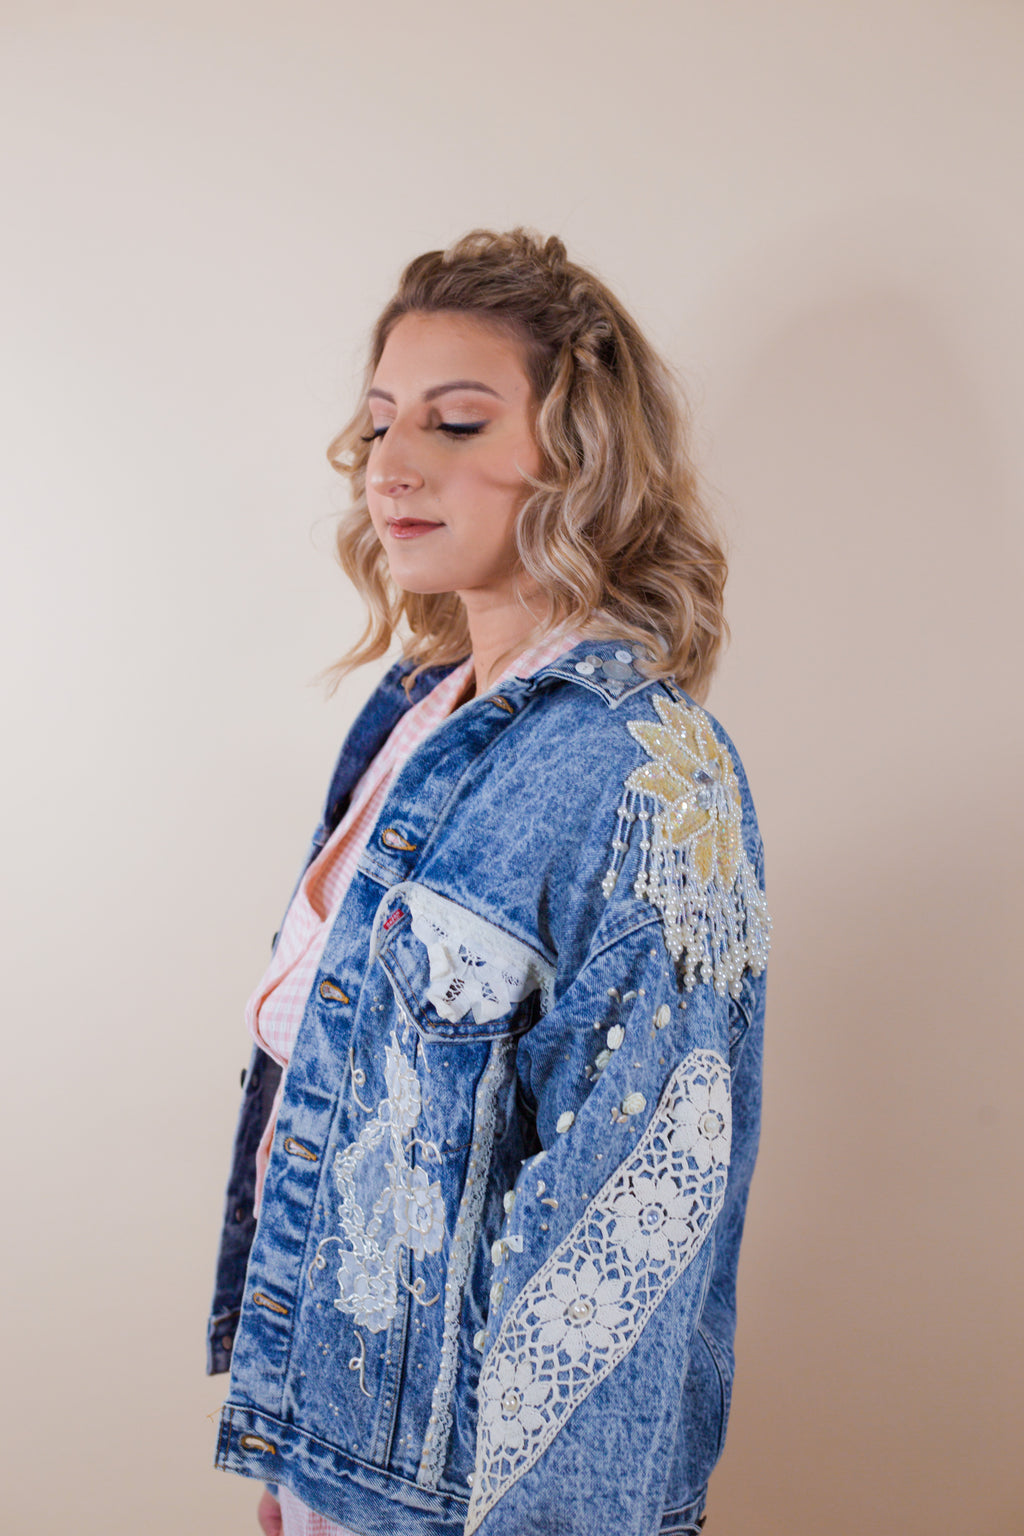 Vintage Acid Wash Levi's Denim Lace Jacket - Gypsie Souls